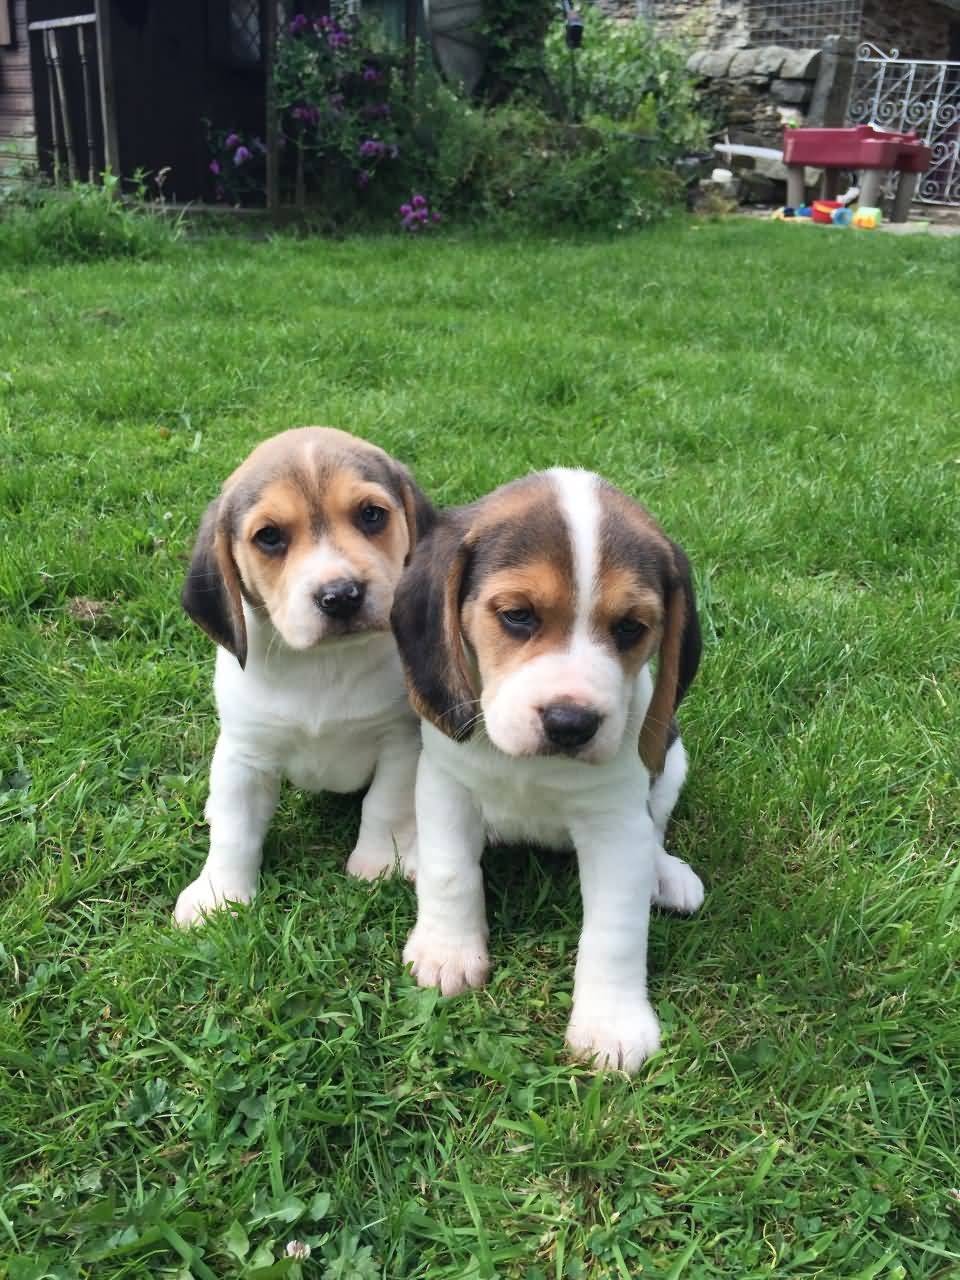 Two Most Beautiful Beagle Dog Puppies Playing In Garden